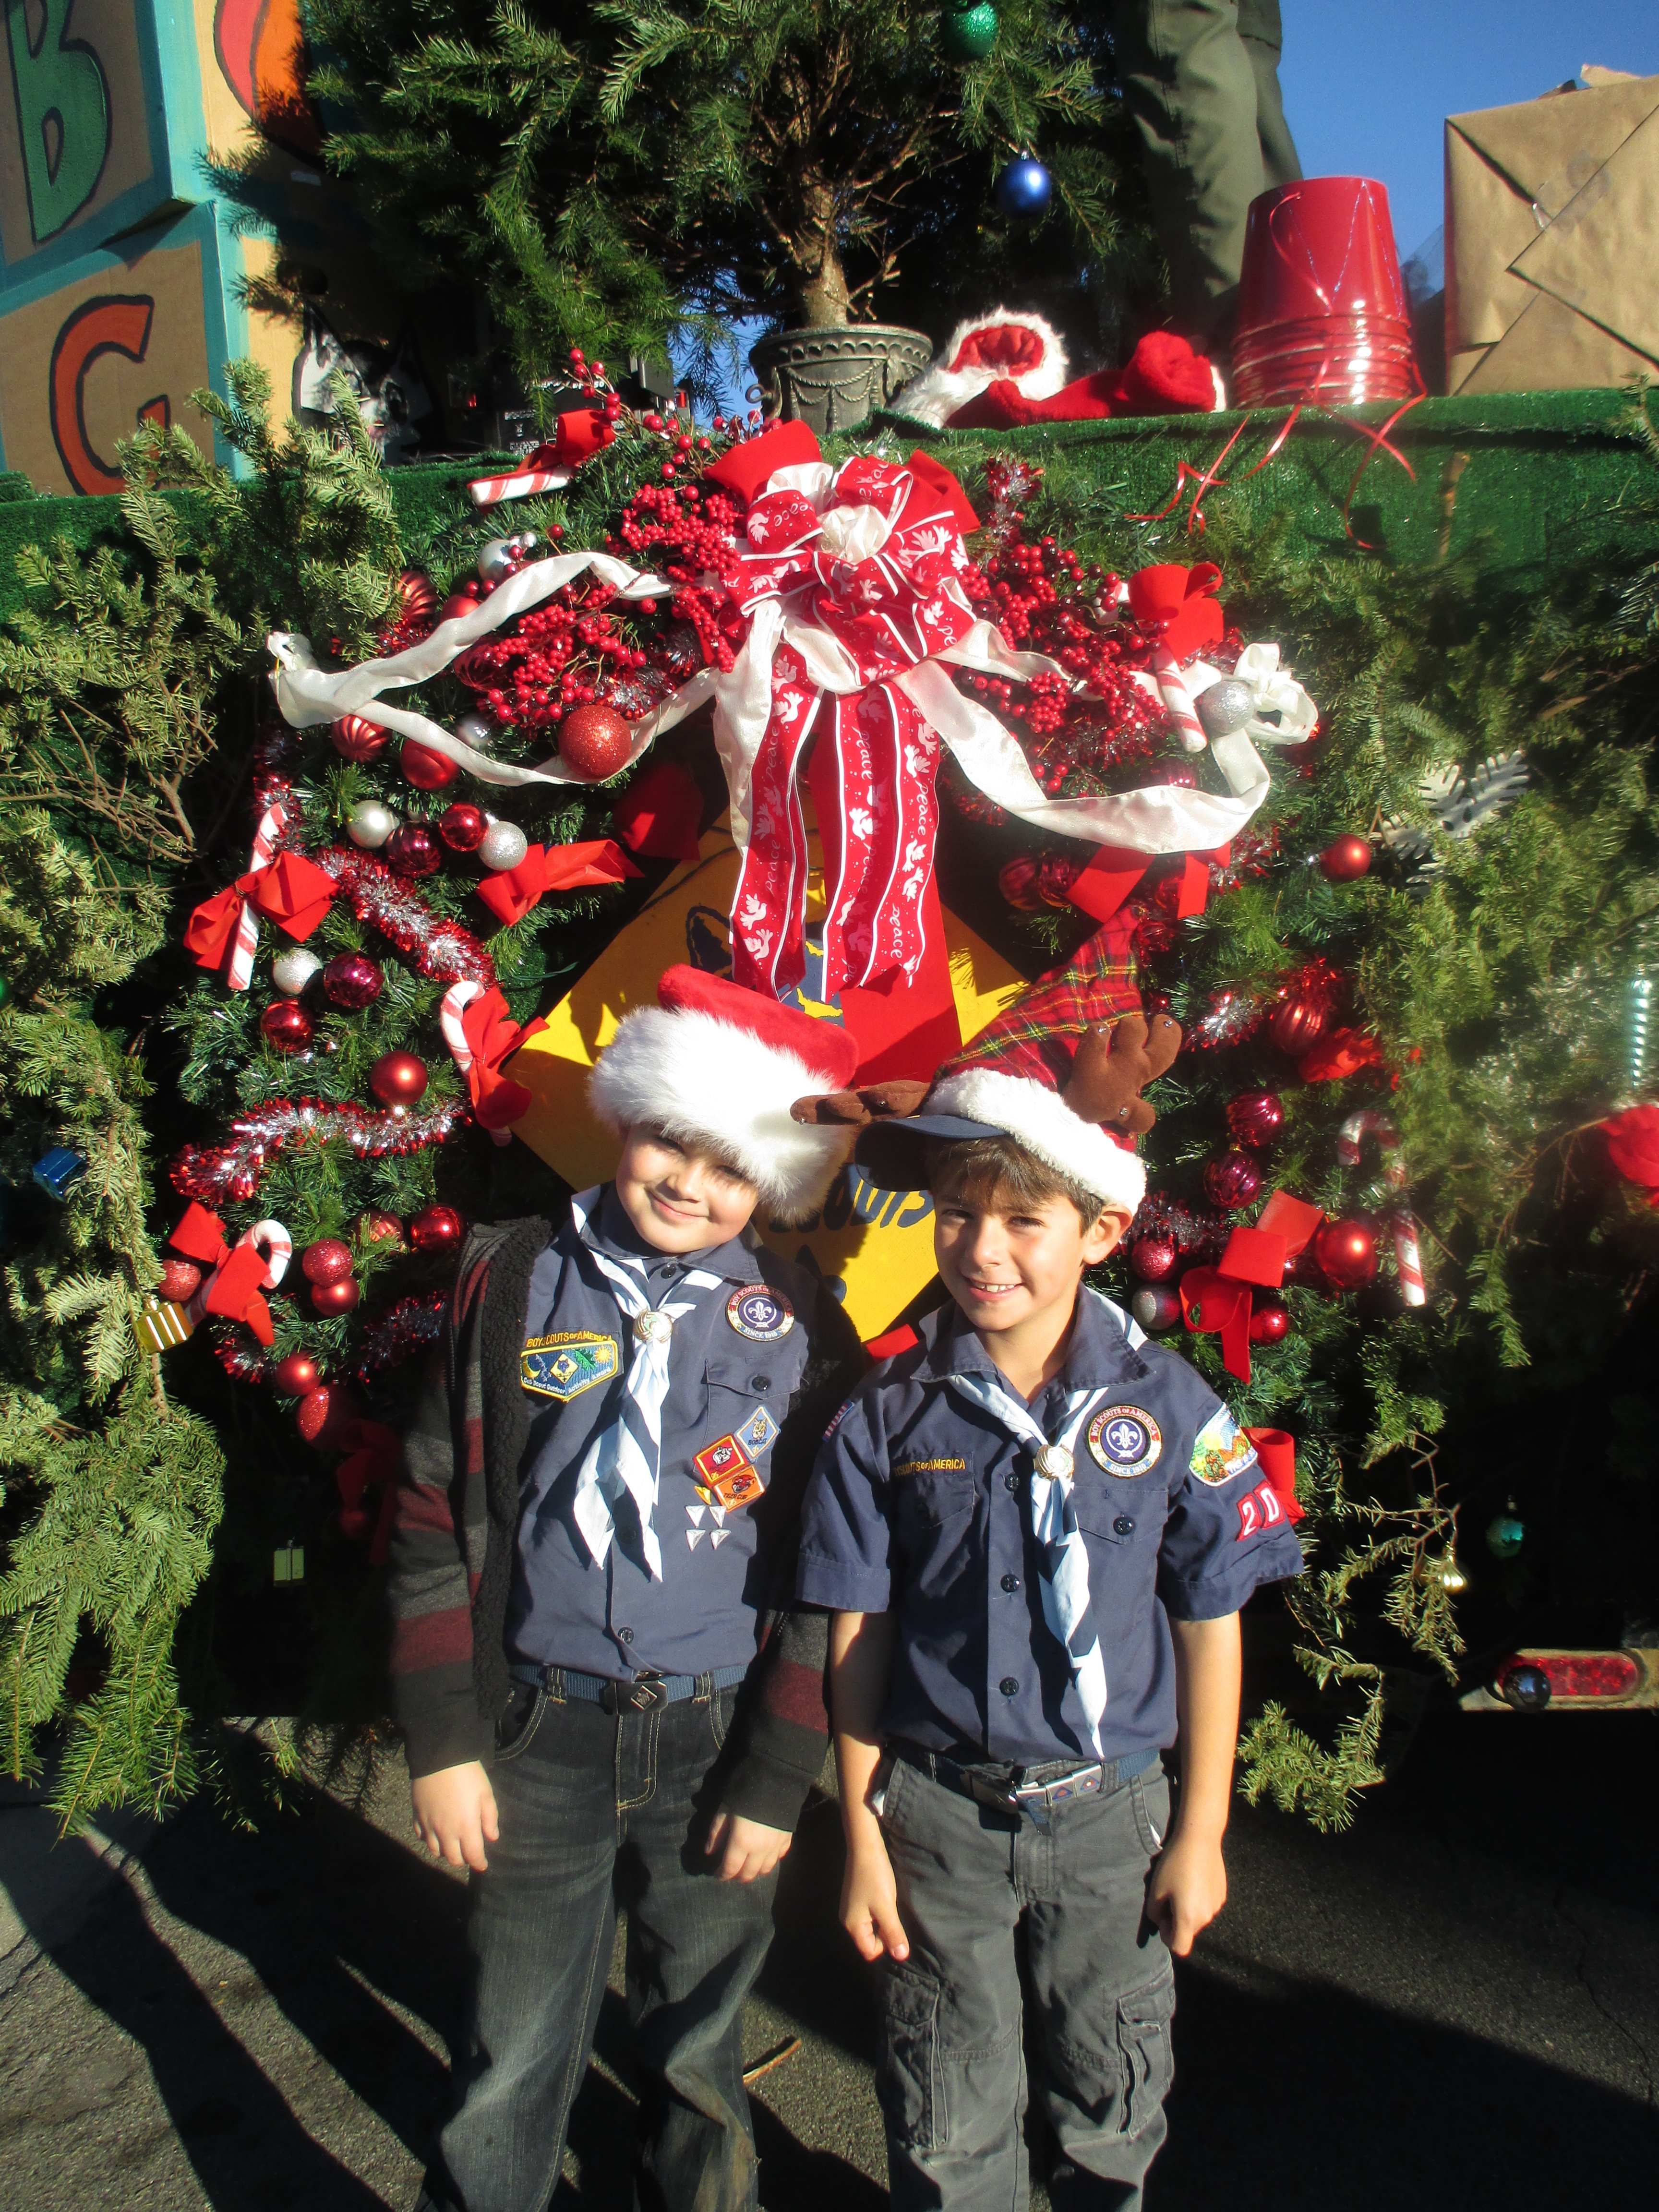 Chino\'s Welcomes Christmas at Annual Parade – ABCpr Media Group ...